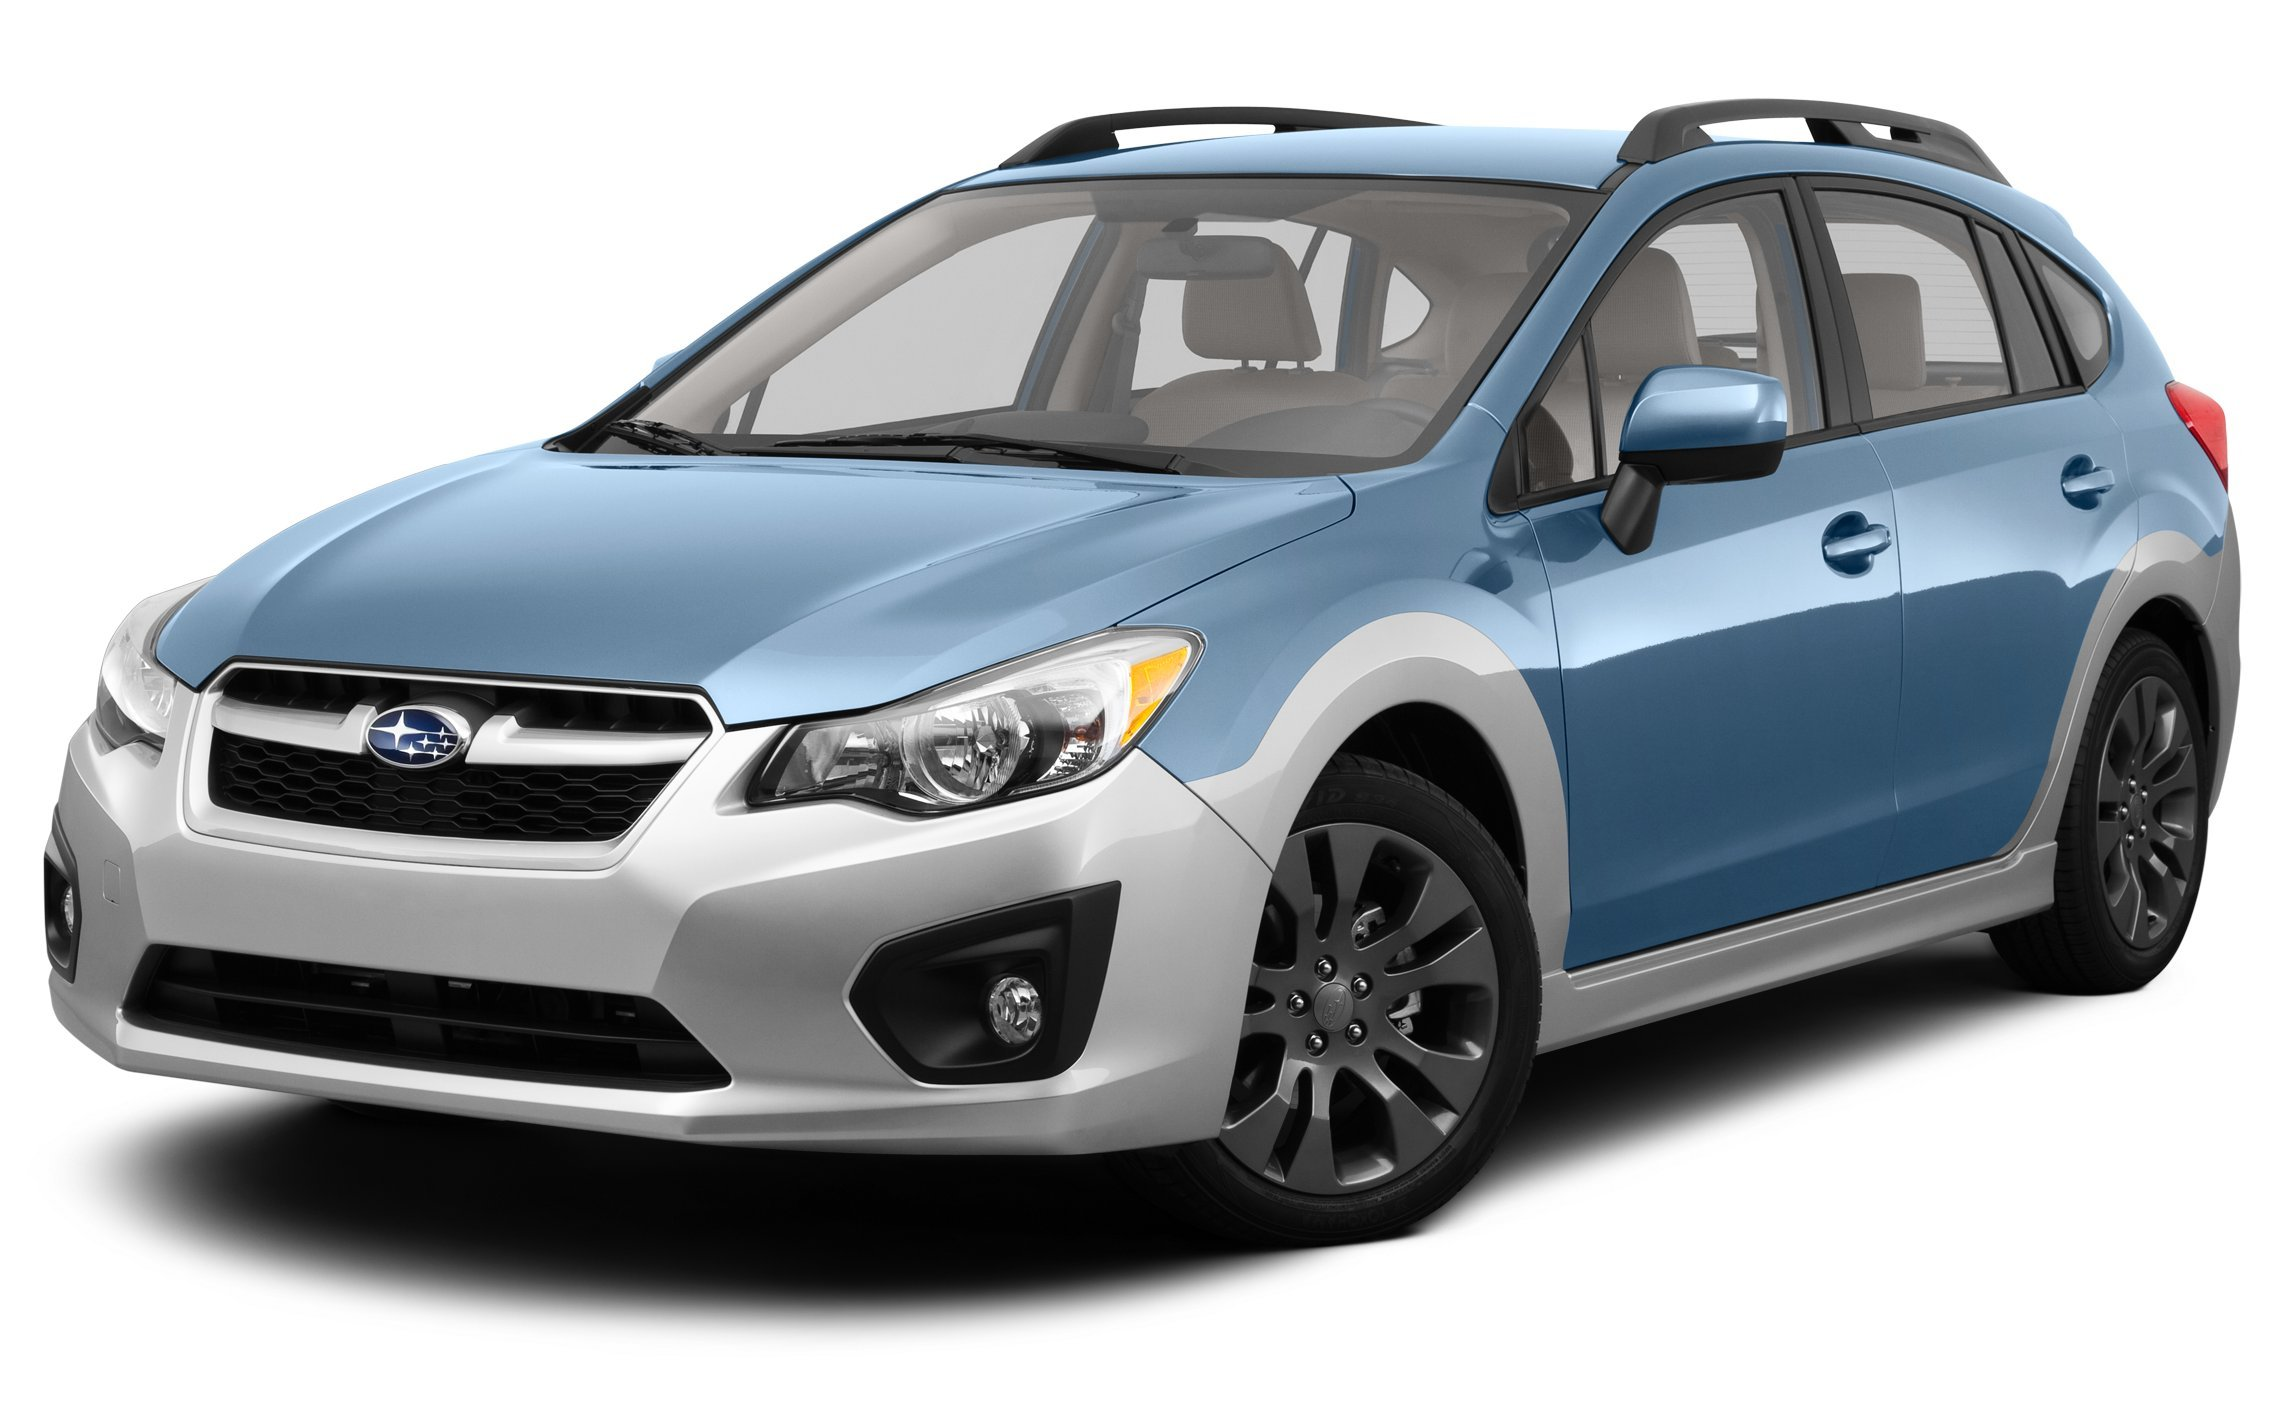 Amazon 2012 Subaru Outback Reviews and Specs Vehicles